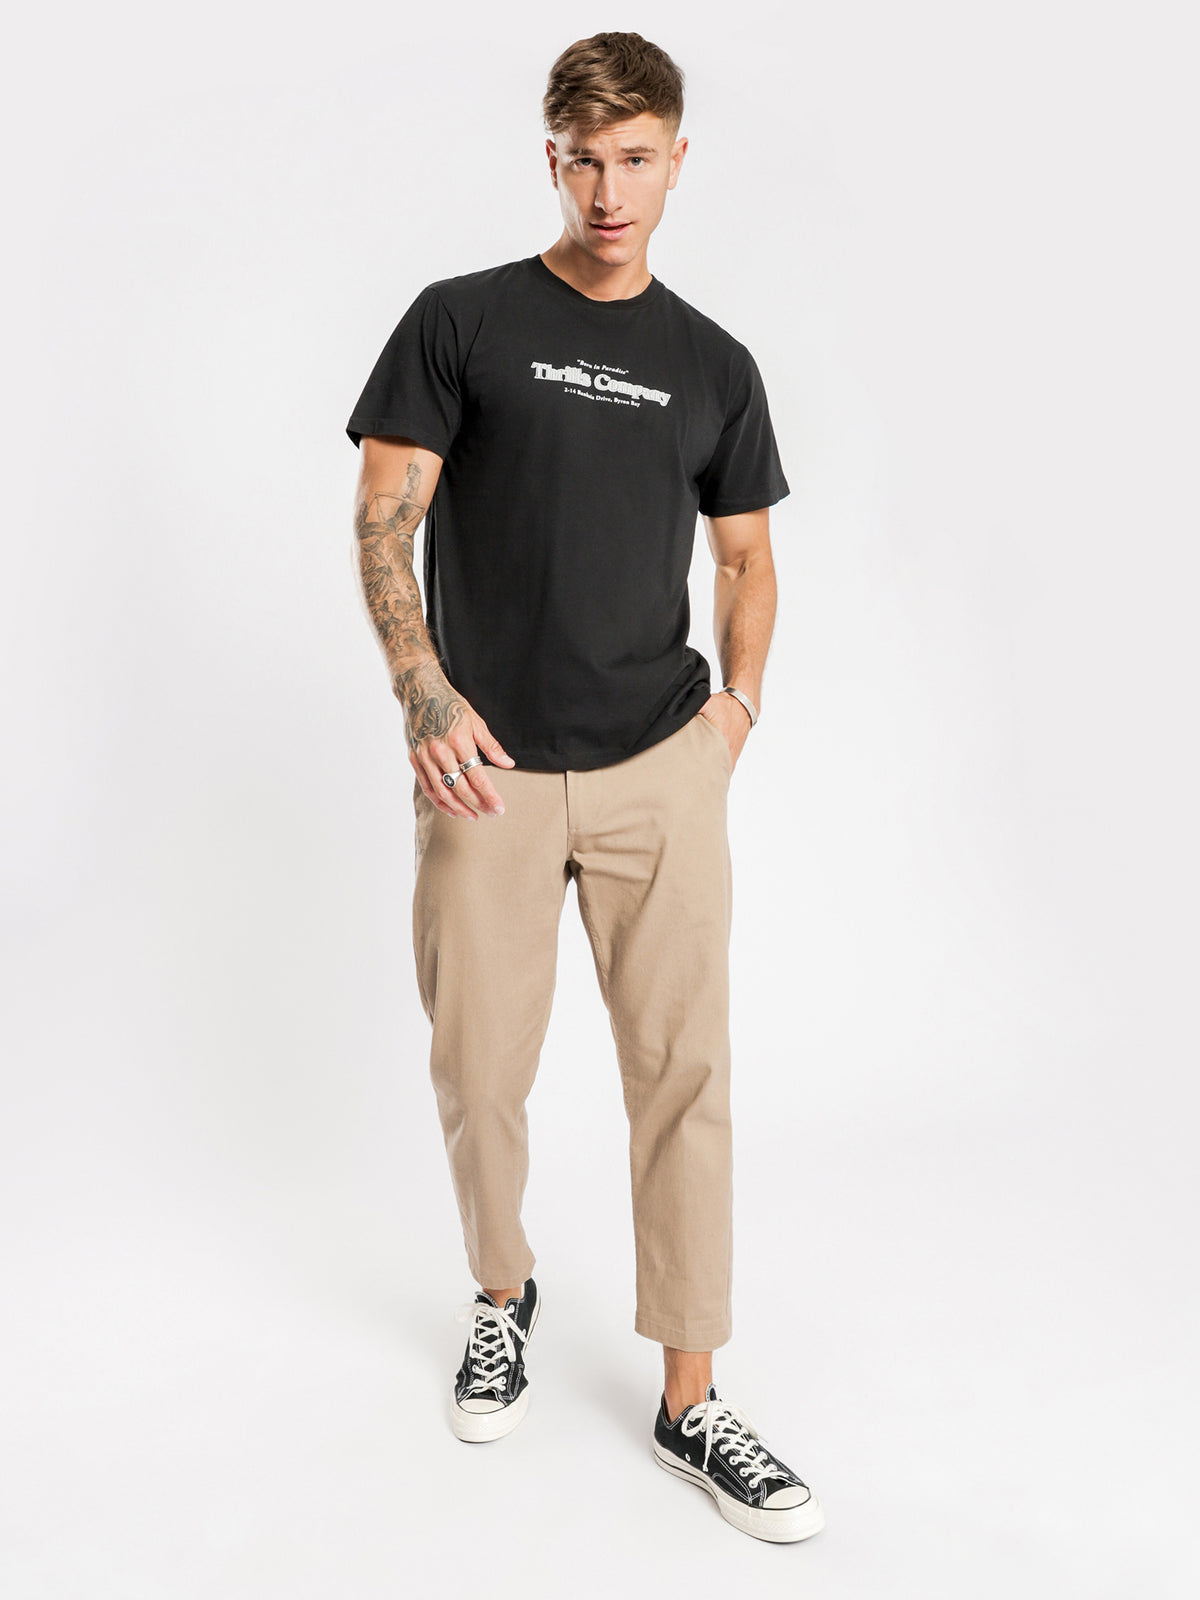 Company Pinline T-Shirt in Black